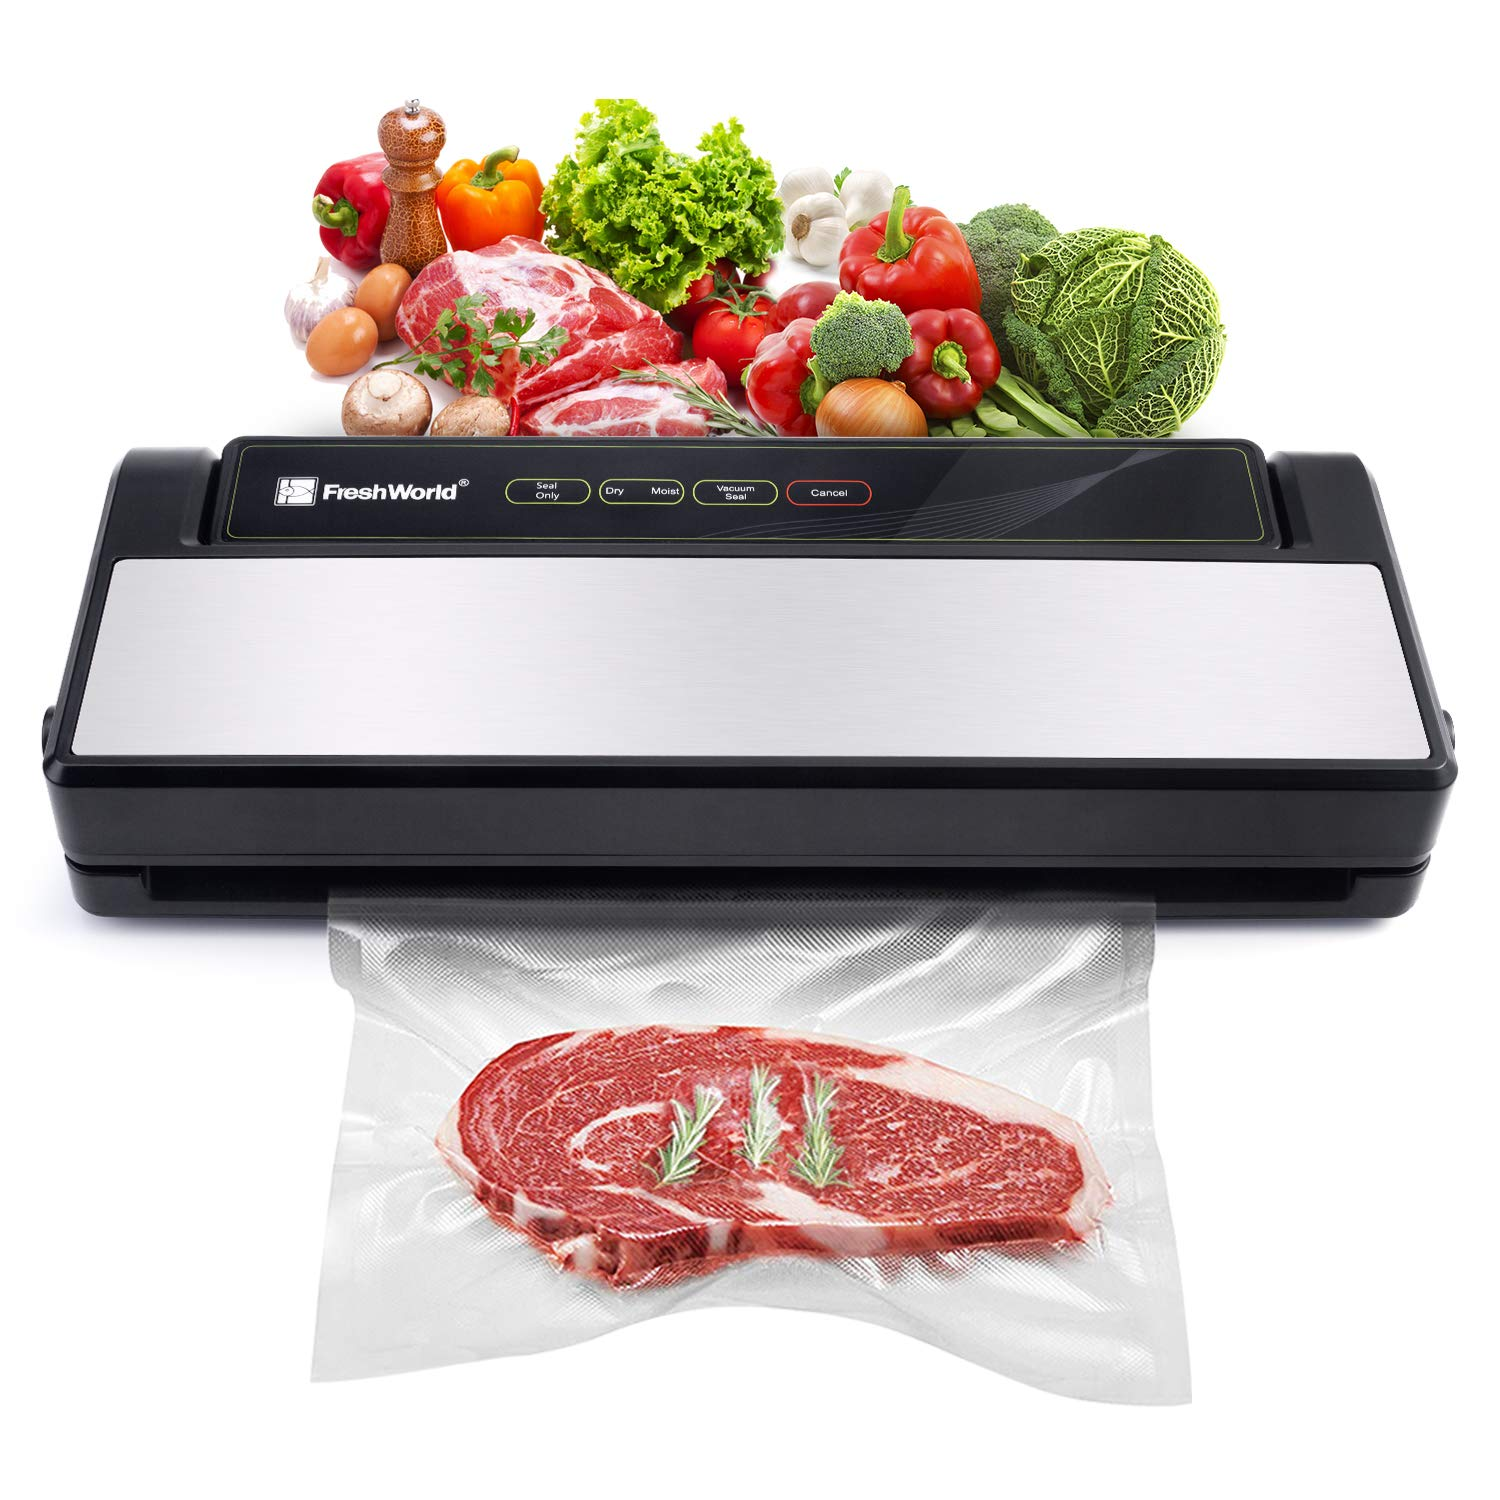 Food Vacuum Sealer Machine w/Starter Kit|32 cm Sealing Length|Stainless Steel Cover|Led Indicator Lights|Dry & Moist Food Modes|Compact Design|TVS-2018 by Fresh World